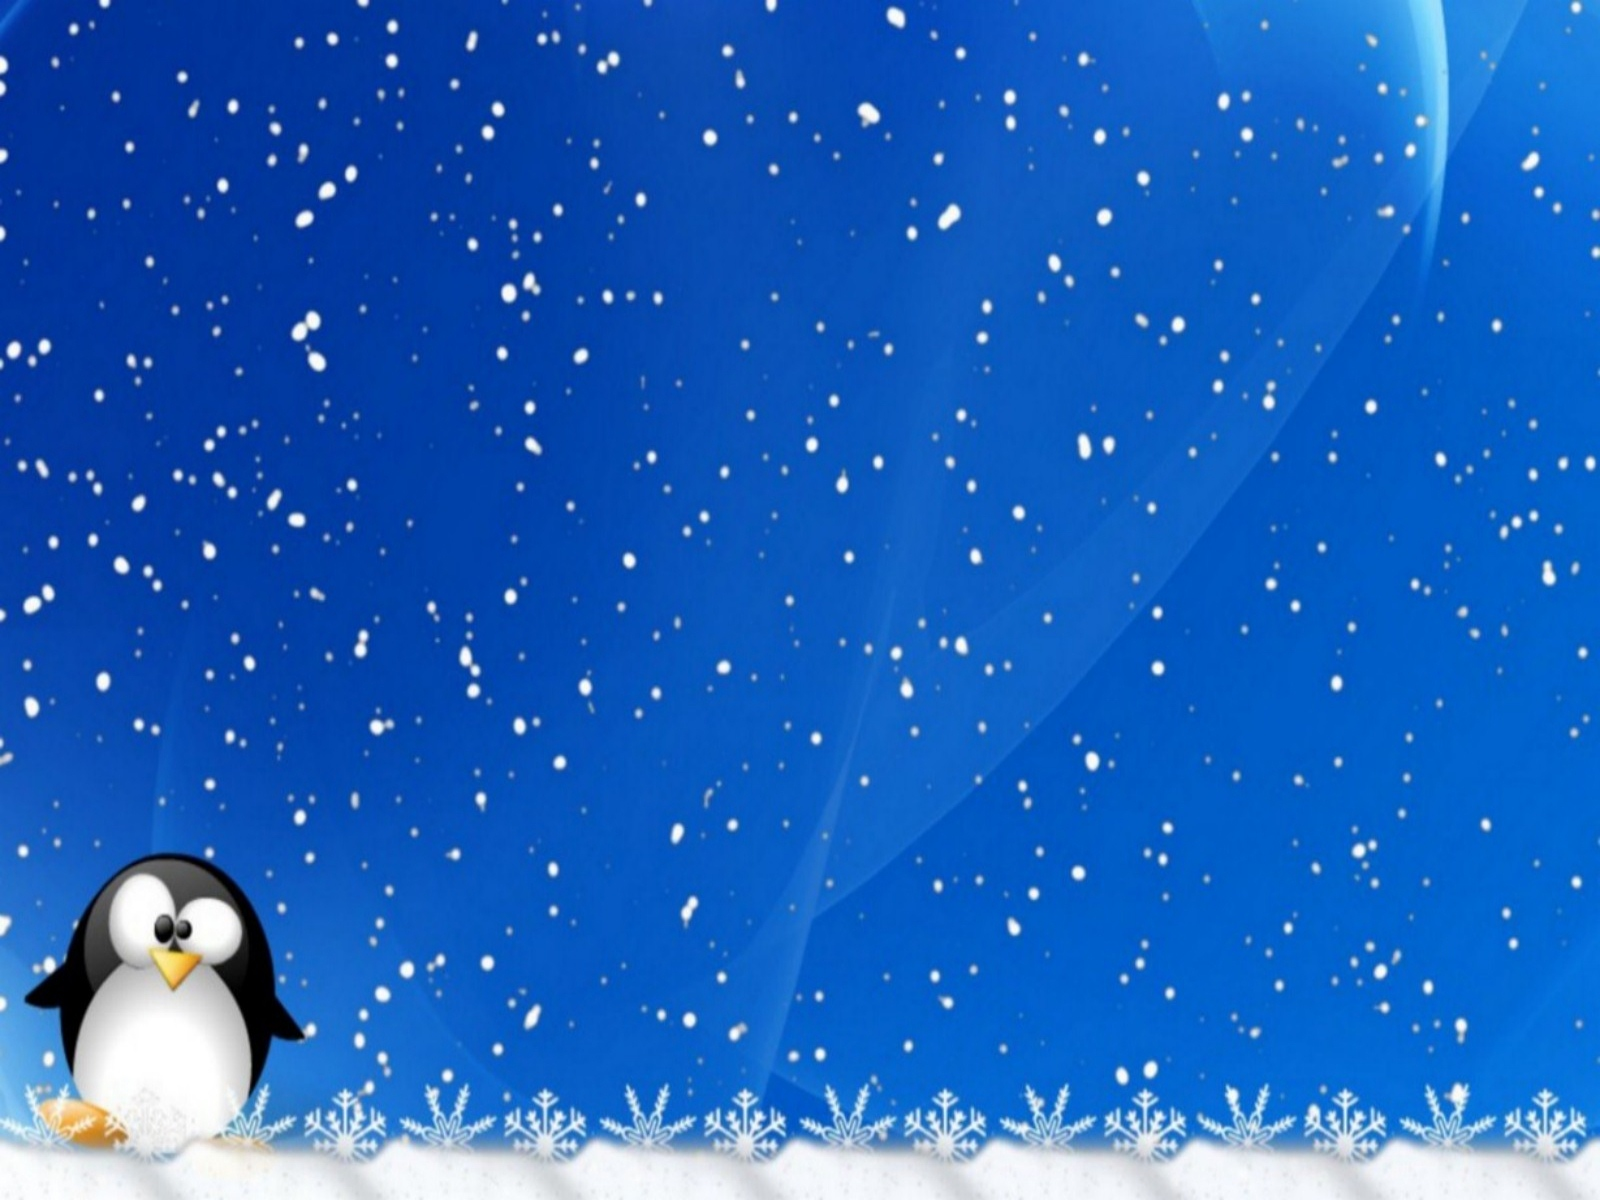 Winter holiday background clipart image freeuse download Free Winter Cliparts Background, Download Free Clip Art ... image freeuse download